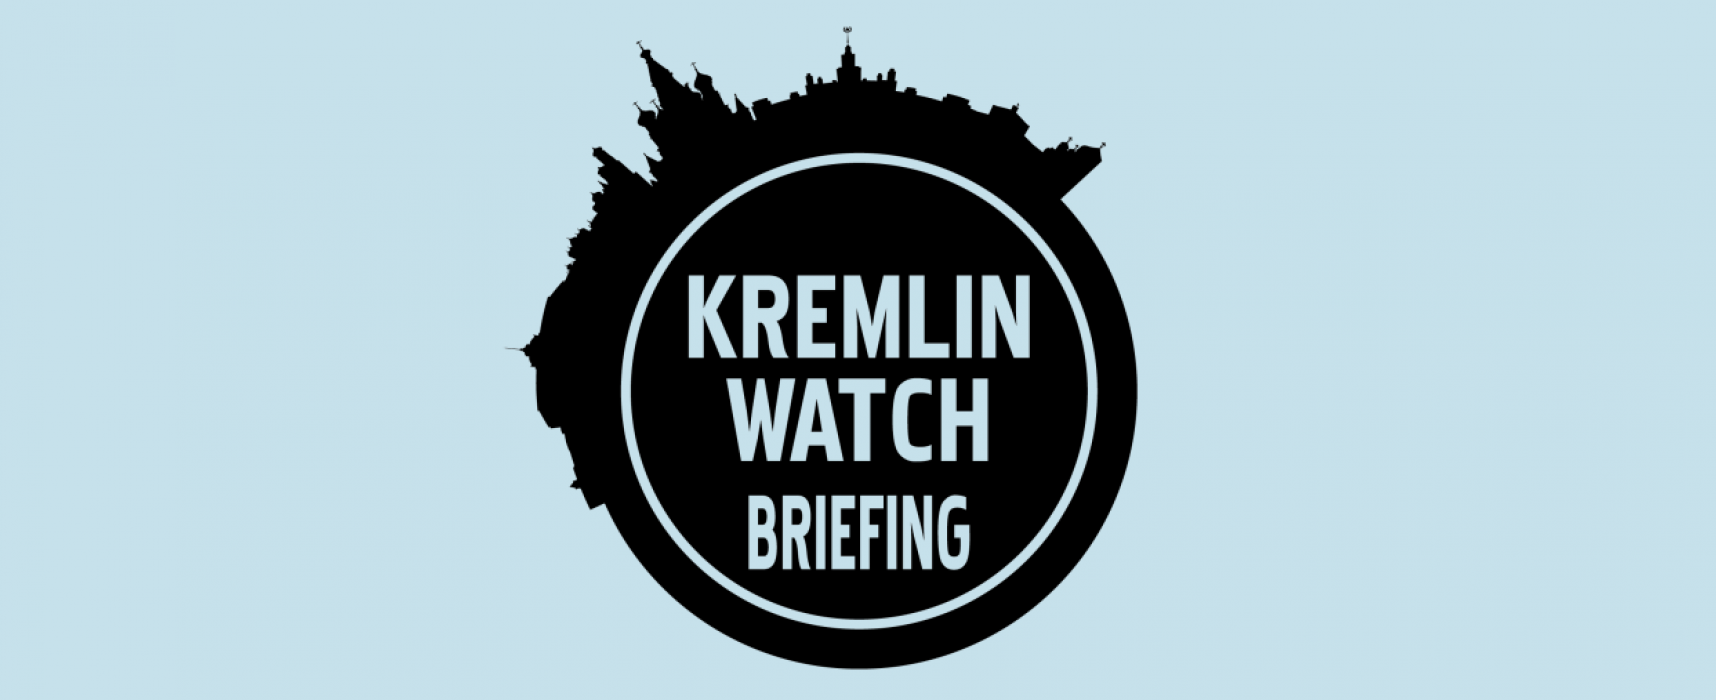 Kremlin Watch Briefing: EU should launch a team to investigate Chinese disinformation